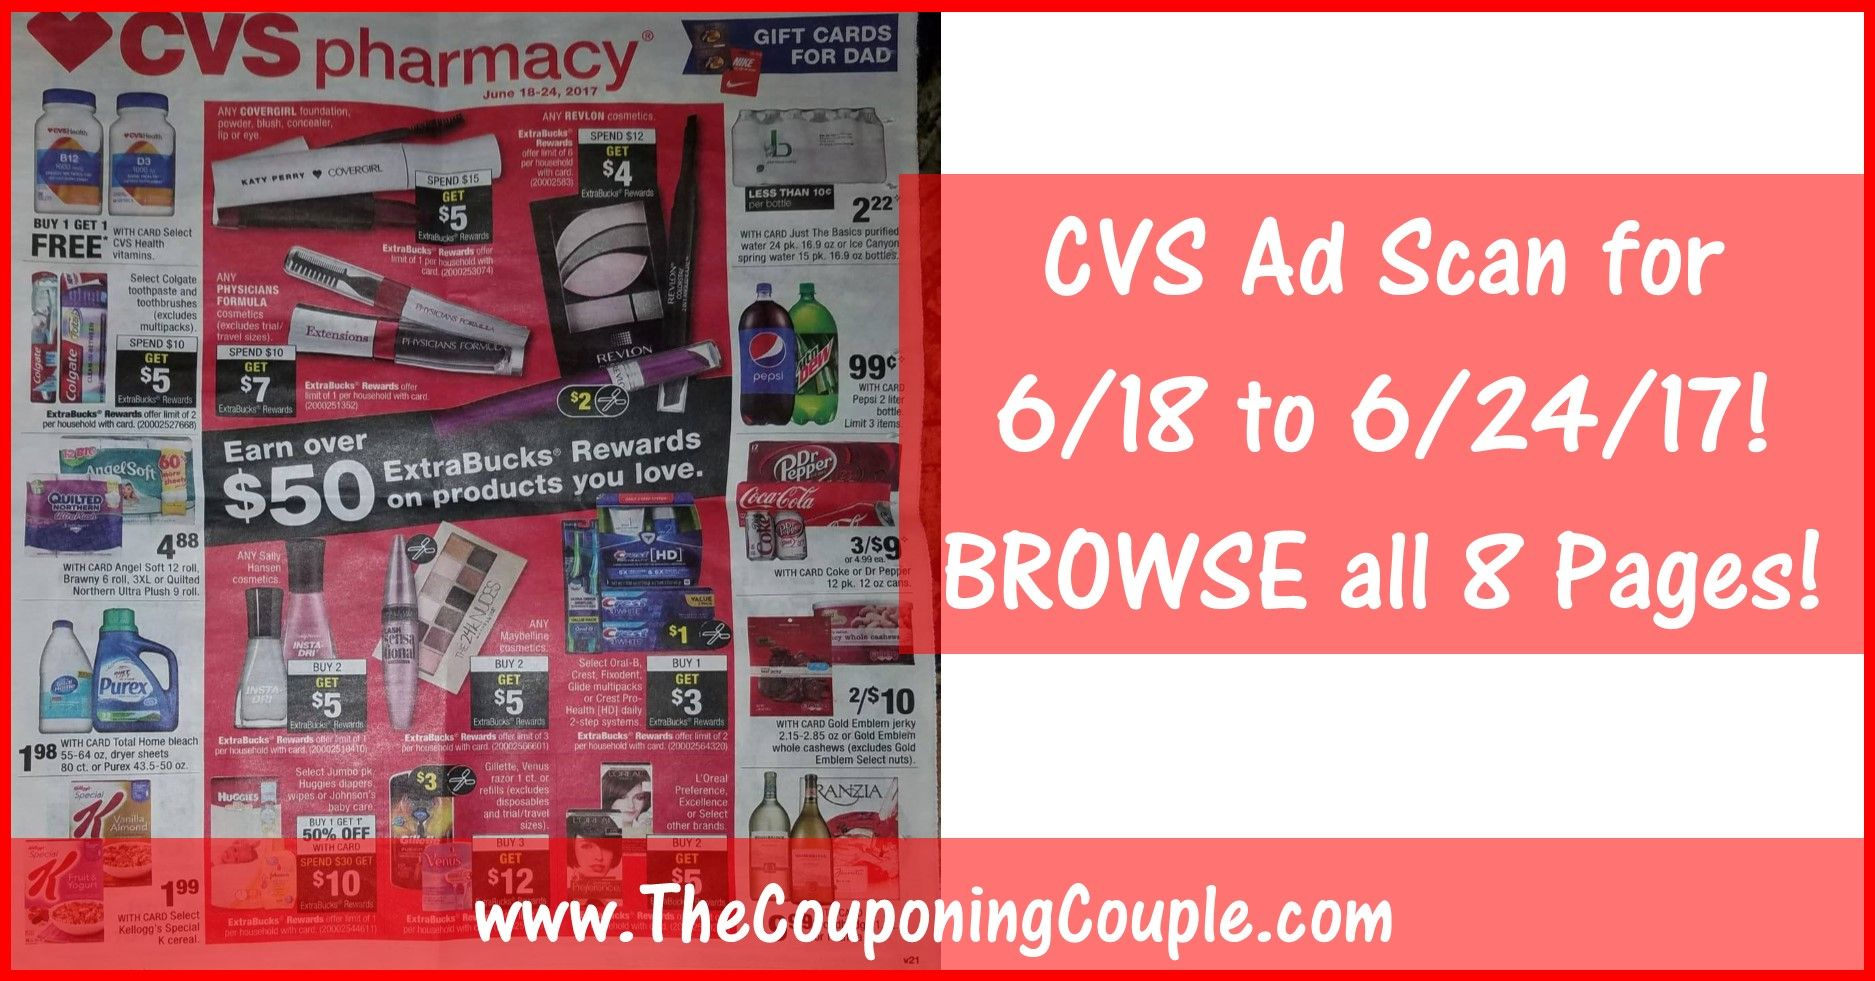 cvs ad scan for 6